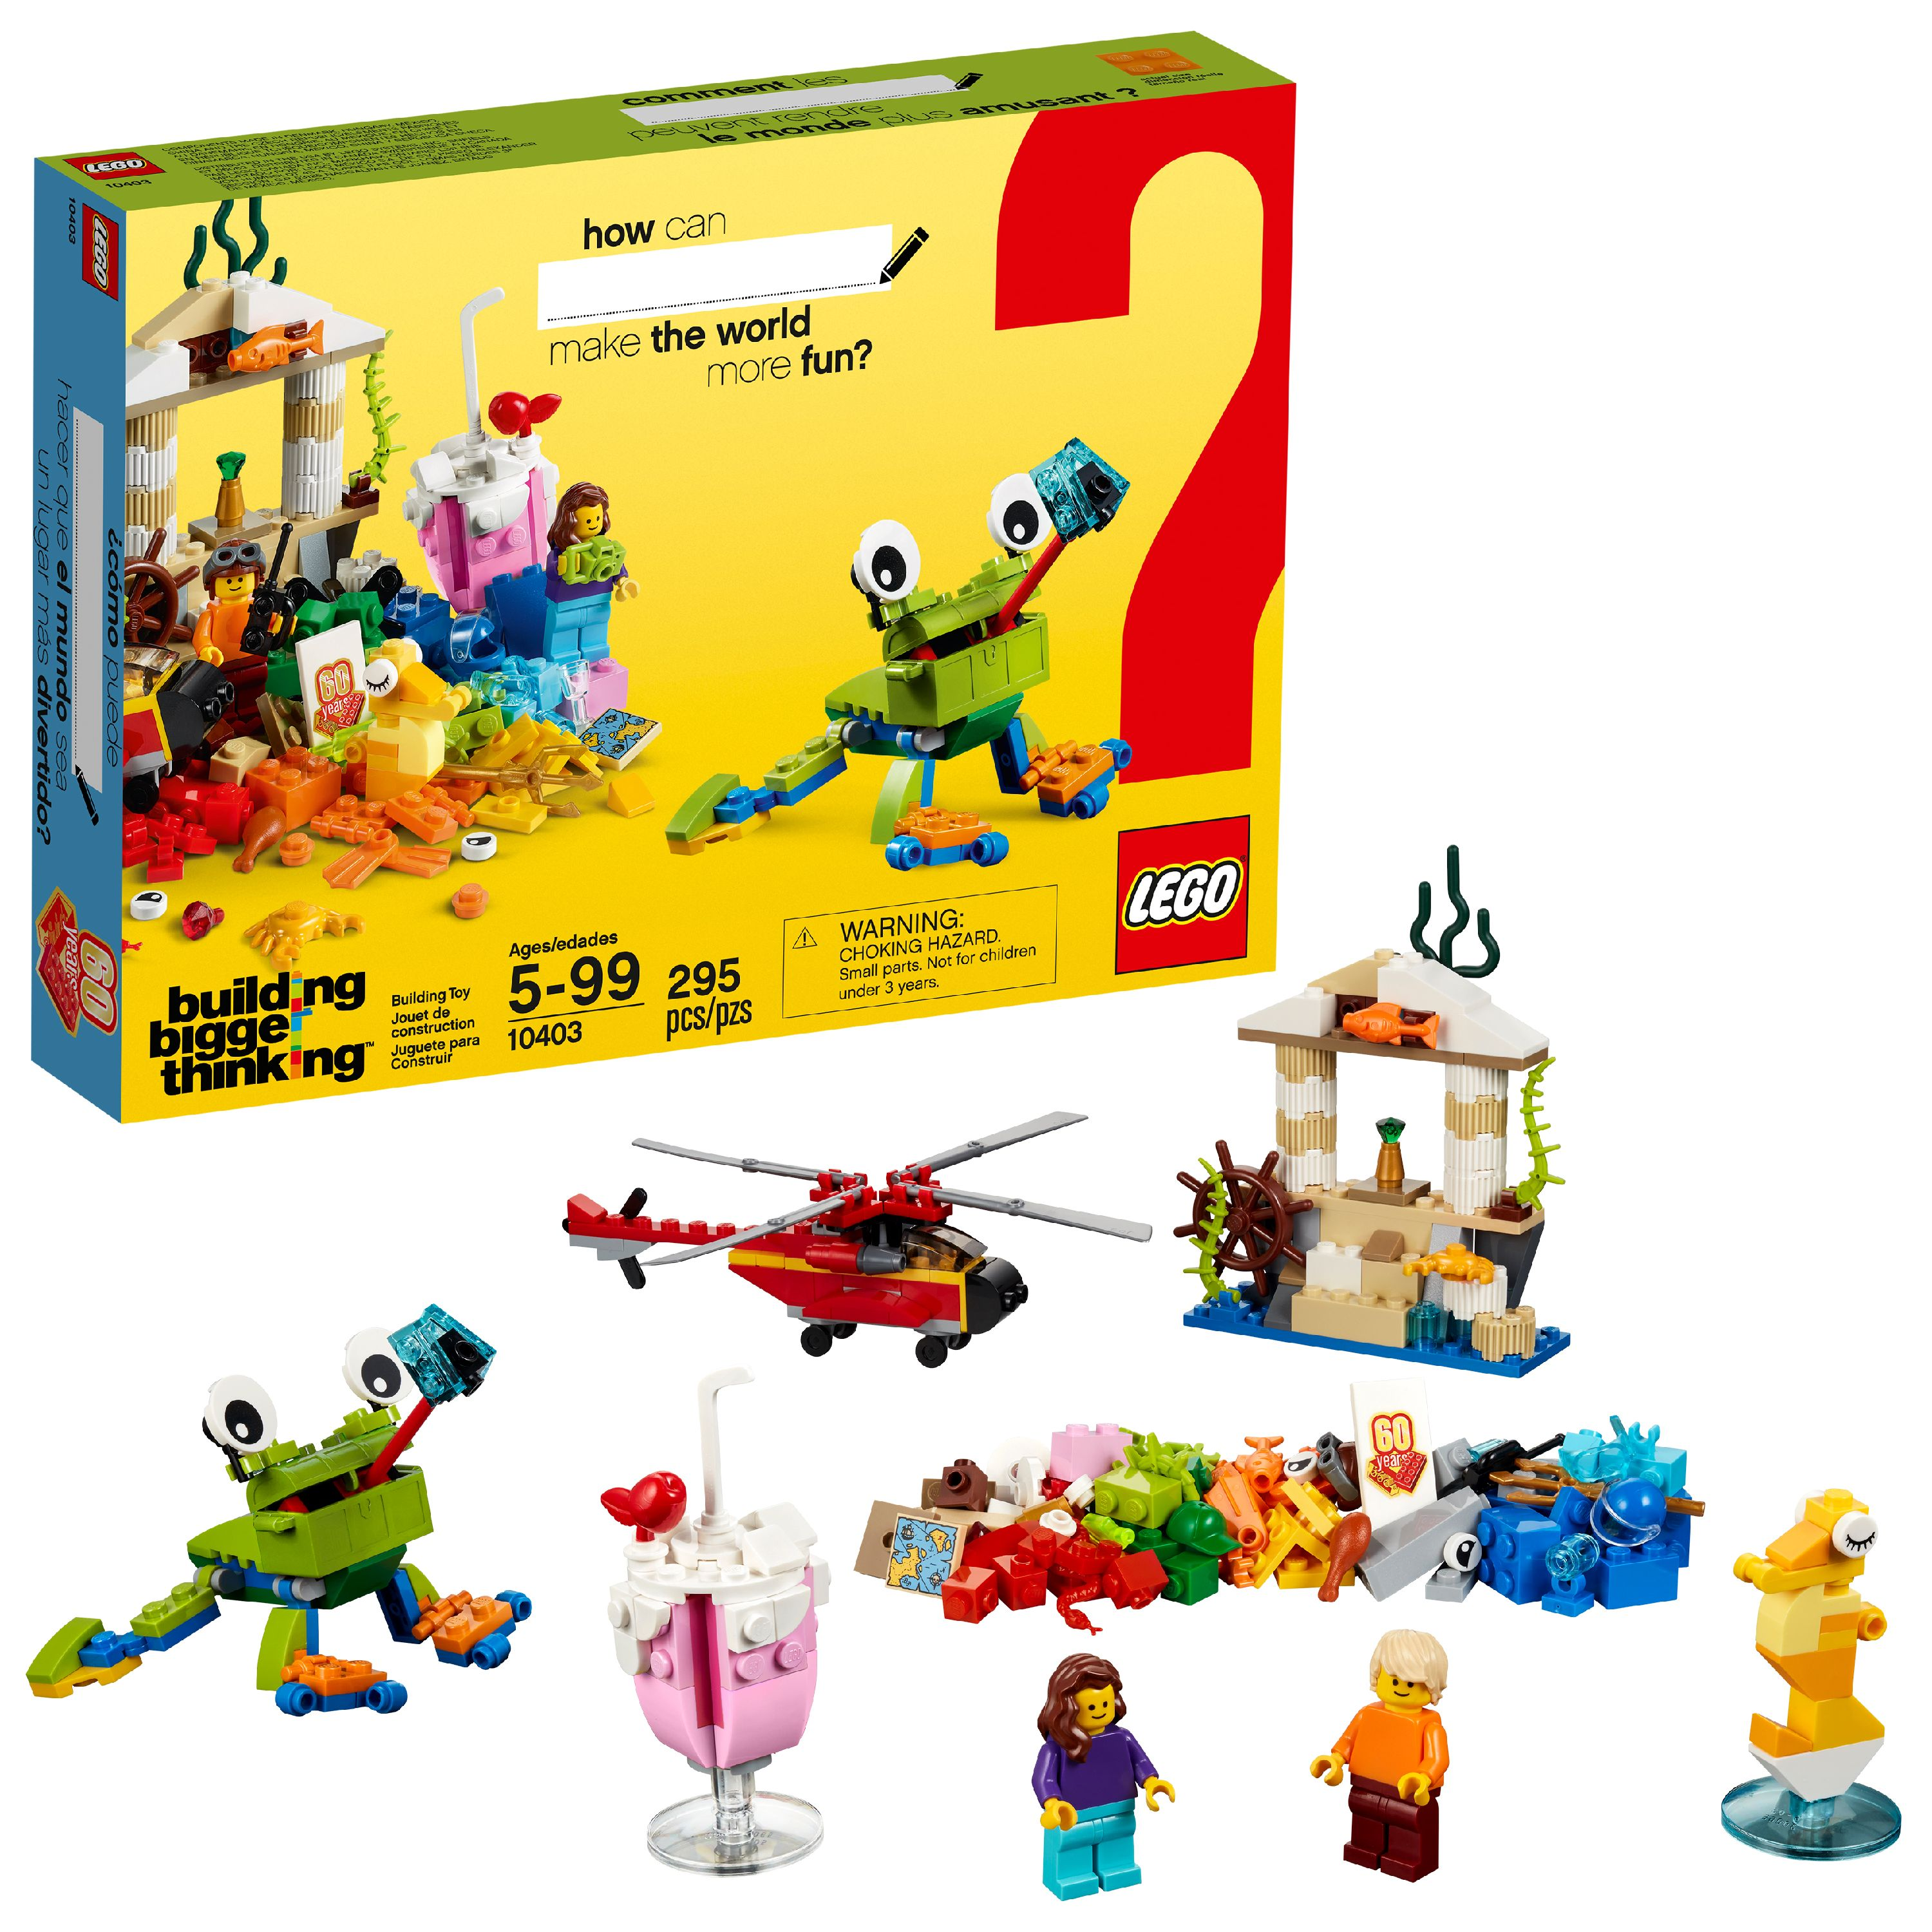 LEGO Brand Campaign Products World Fun 10403